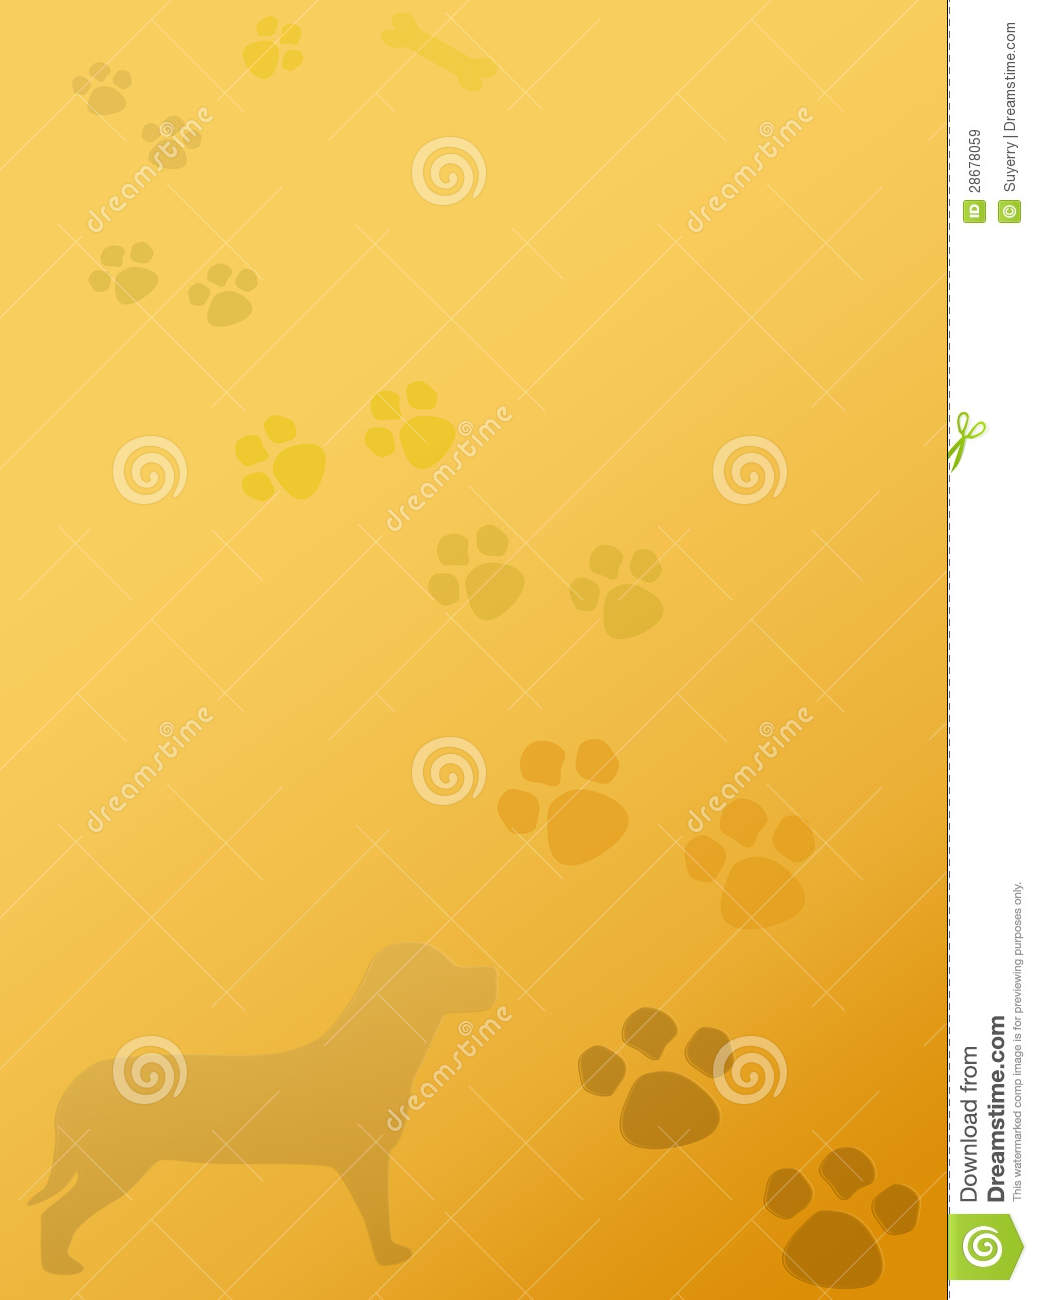 Puppy Dog Paws Stationery Notepad Background Stock ...